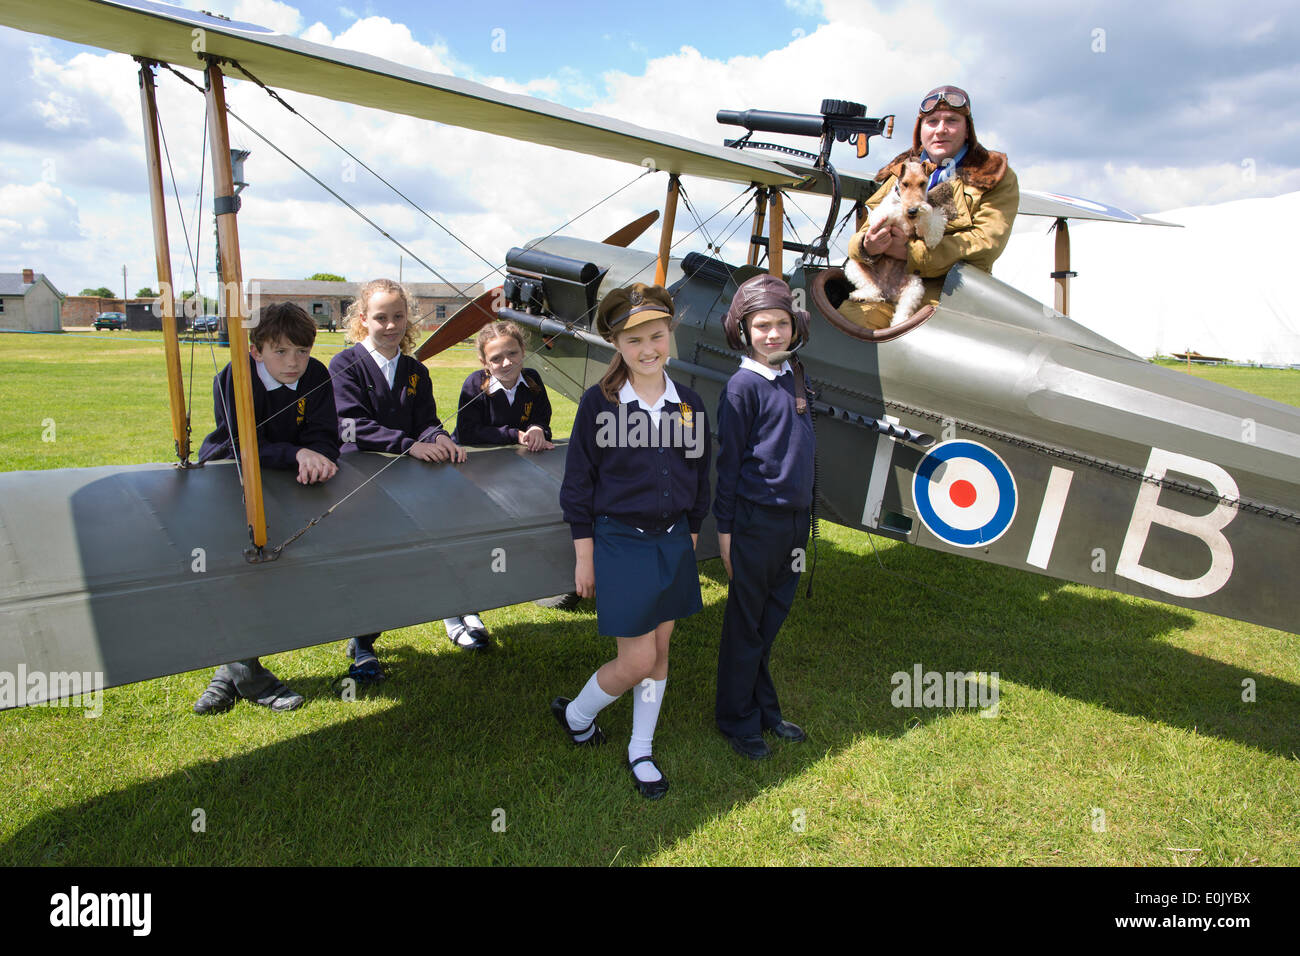 Stow Maries Aerodrome, UK. 14th May, 2014. Commemoration of Edgar Roberts WWI Royal Flying Corps Pilot accompanied on his fighter pilot missions by his terrier Mersea Mick Picture shows pupils (l-r) Ben Rumble, Zoe Clegg, Amber Jones, Alannah Murrel and Cameron Hope (wearing memorabilia hat) from the Mersea Island School visiting Stow Maries Aerodrome gathered around a SE5a replica WWI aerorplane alongside pilot (Trevor Poole). Credit:  Clickpics/Alamy Live News - Stock Image